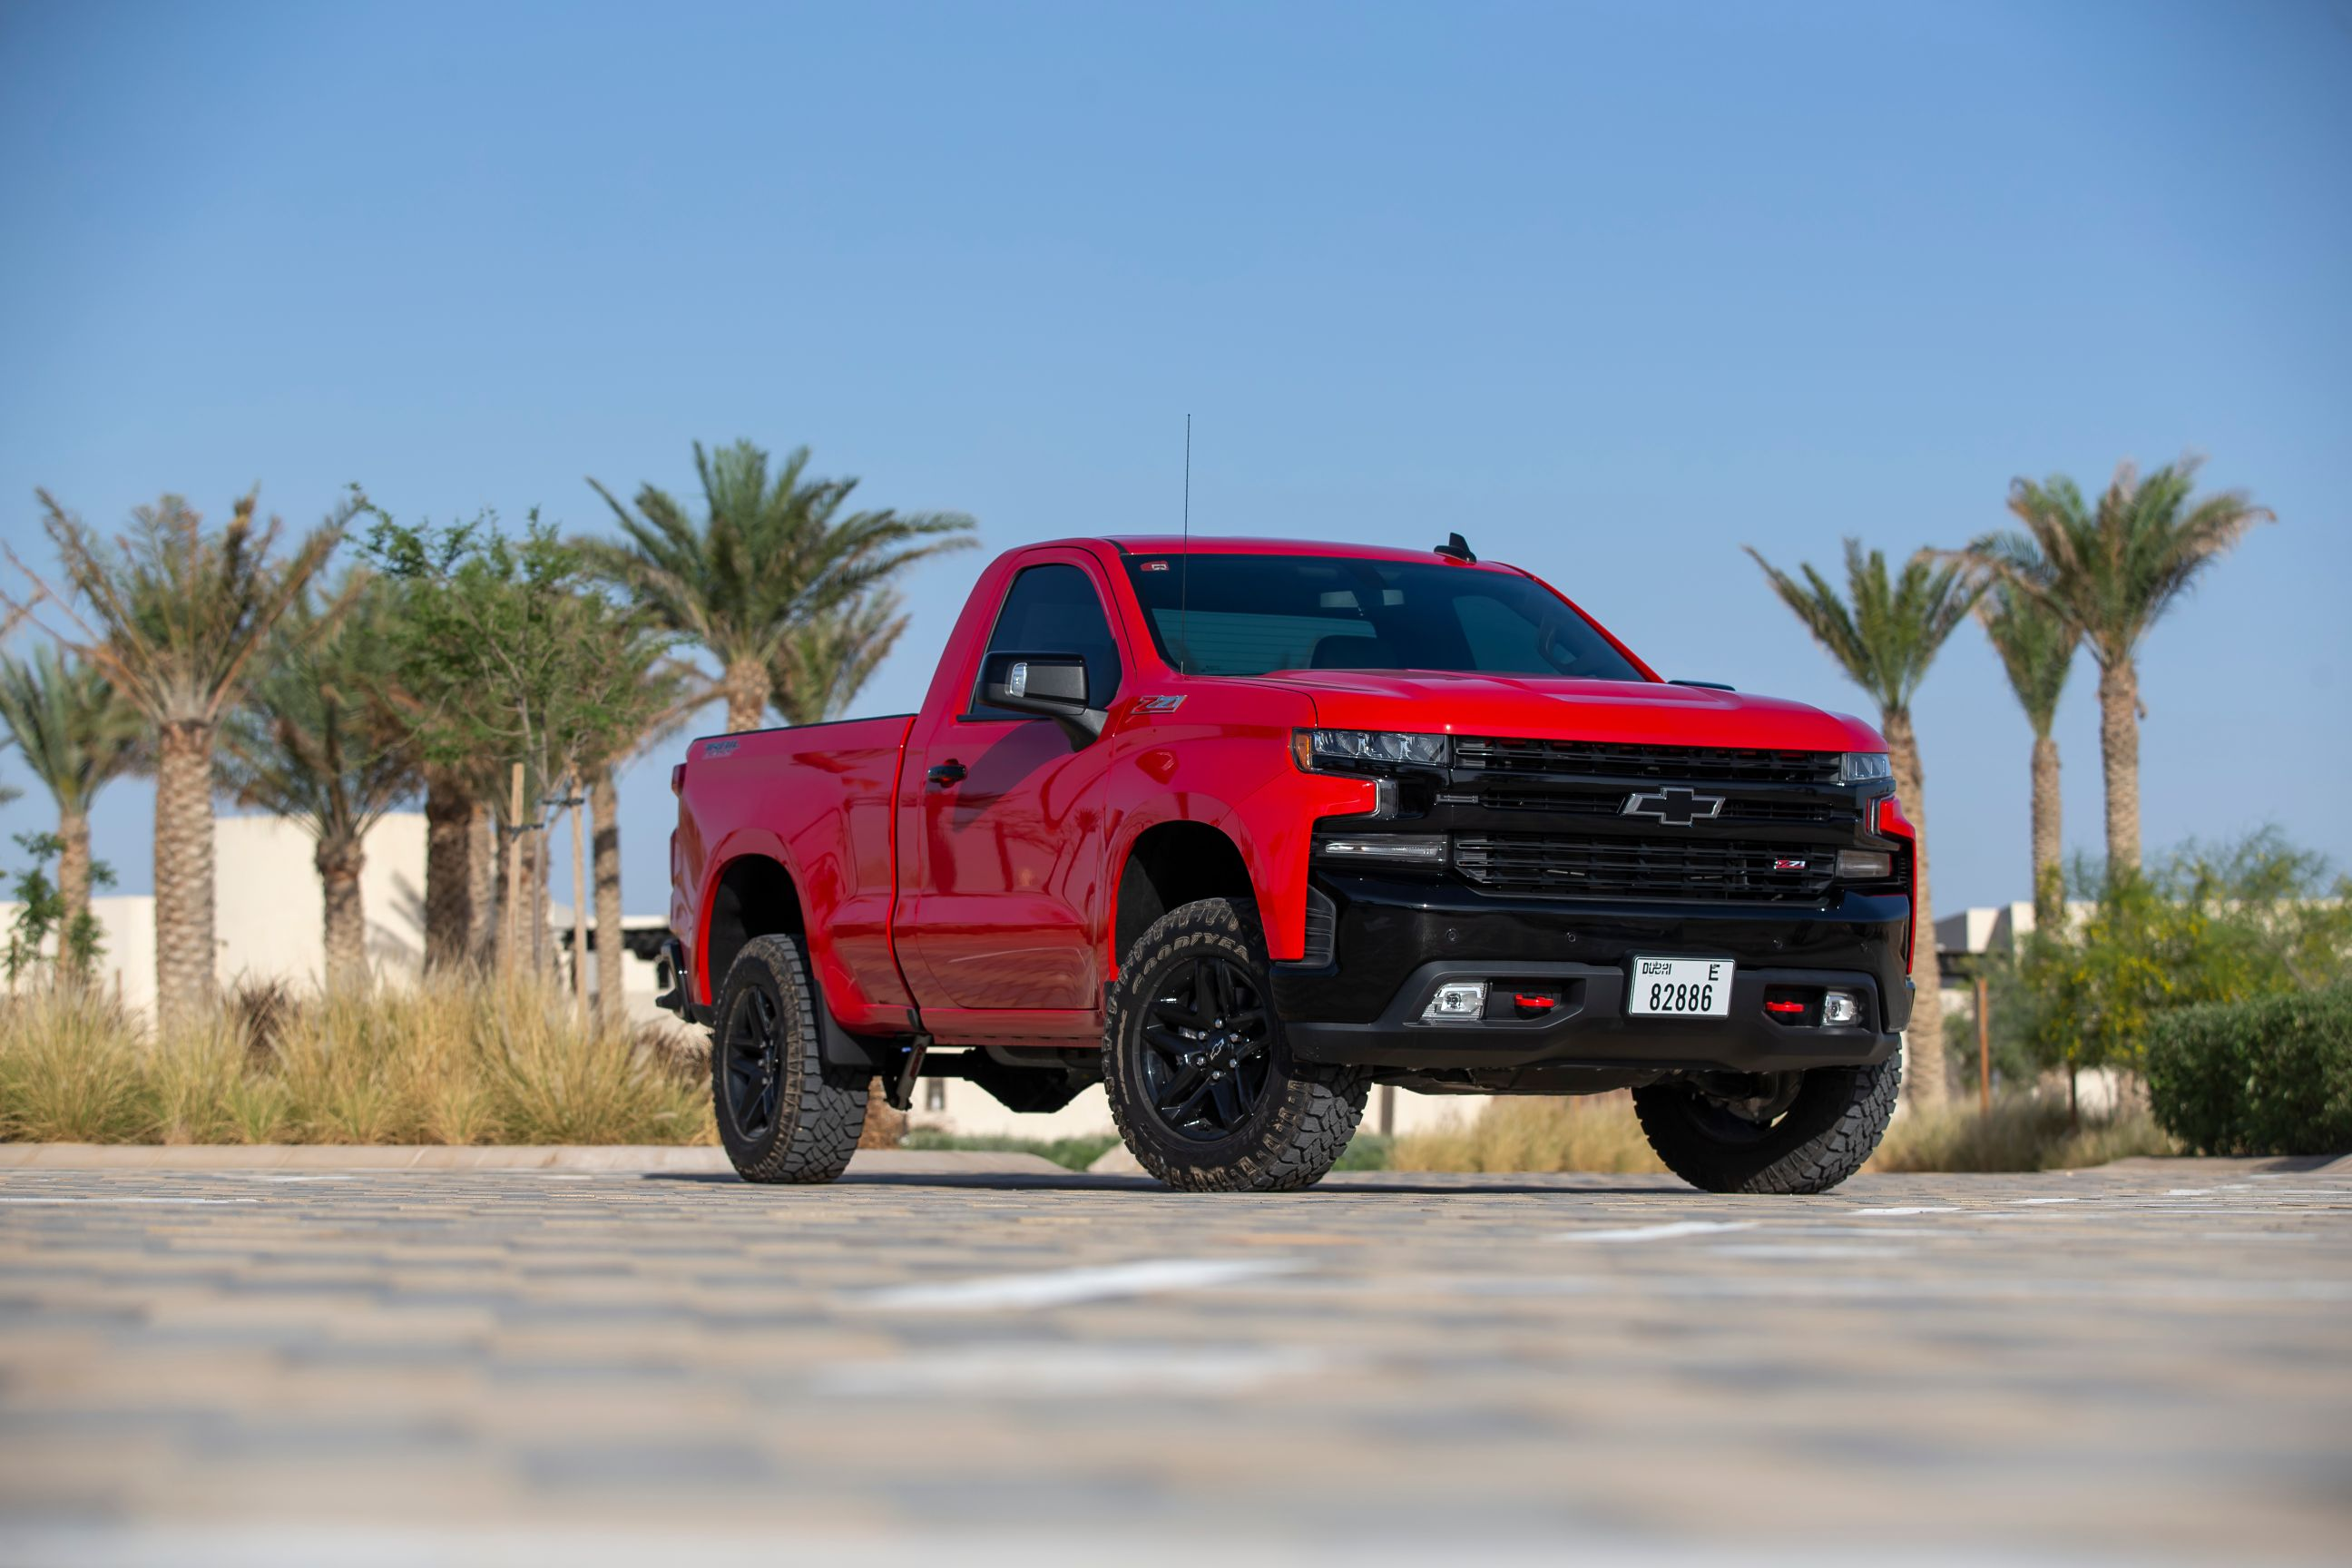 Certified Pre Owned Mercedes >> 2019 Chevrolet Silverado launched in the UAE | Egypt - YallaMotor